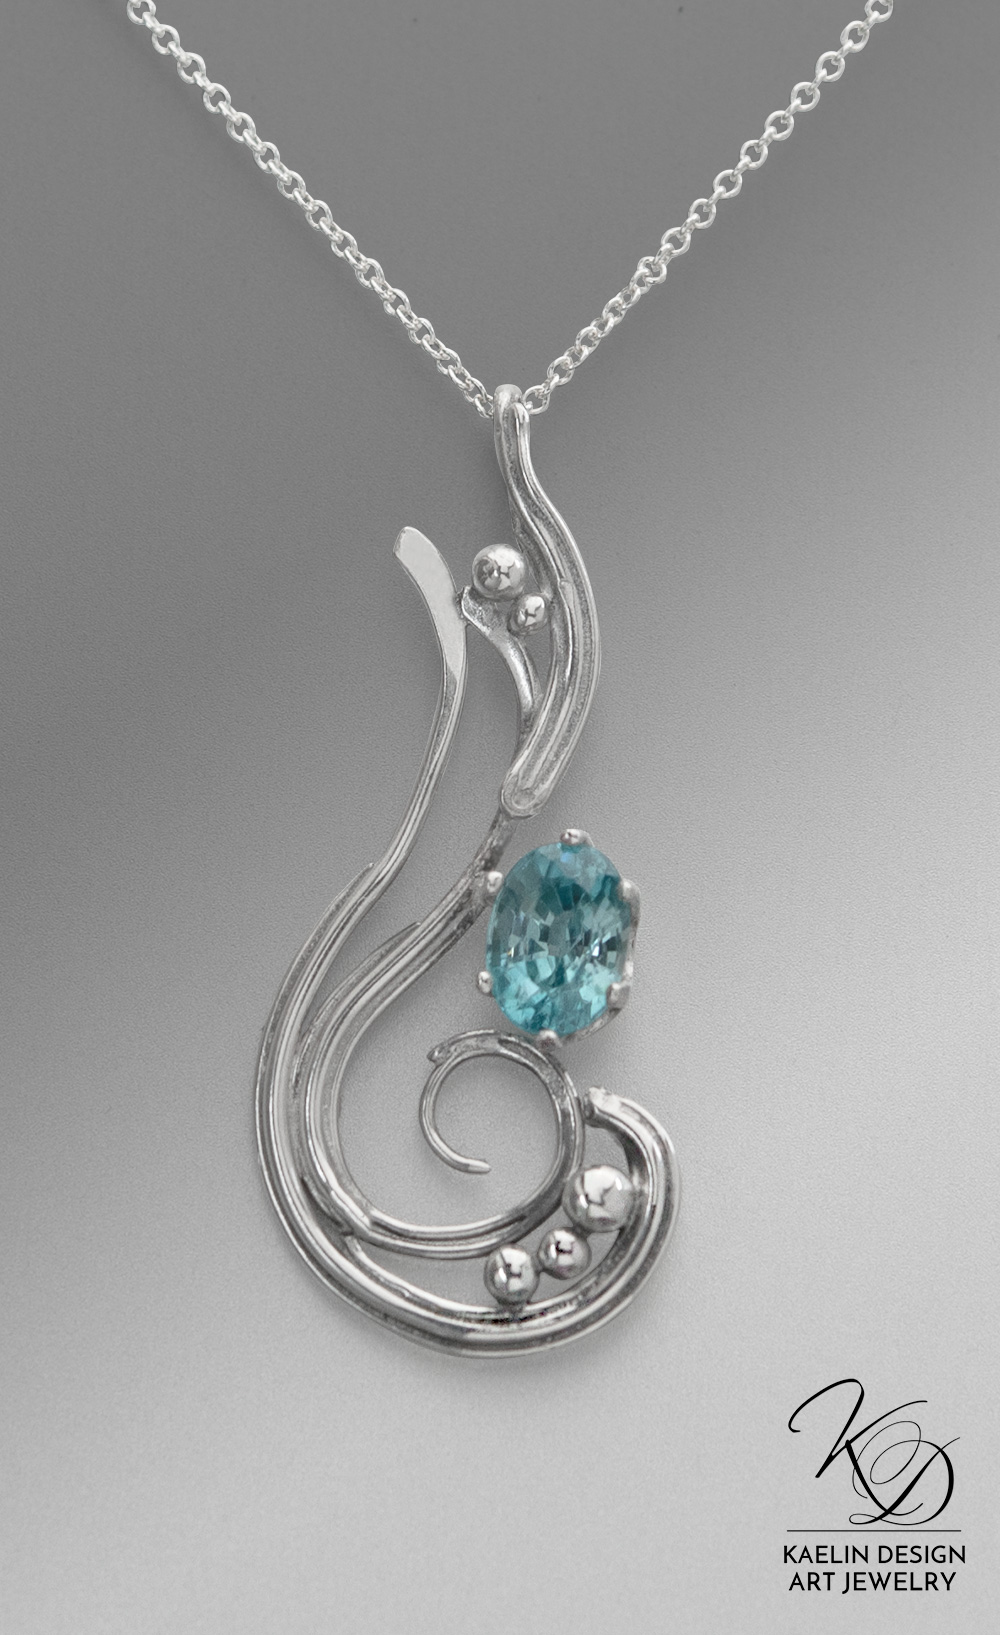 Sea Tides Apatite and Sterling Silver Art Jewelry Pendant by Kaelin Design